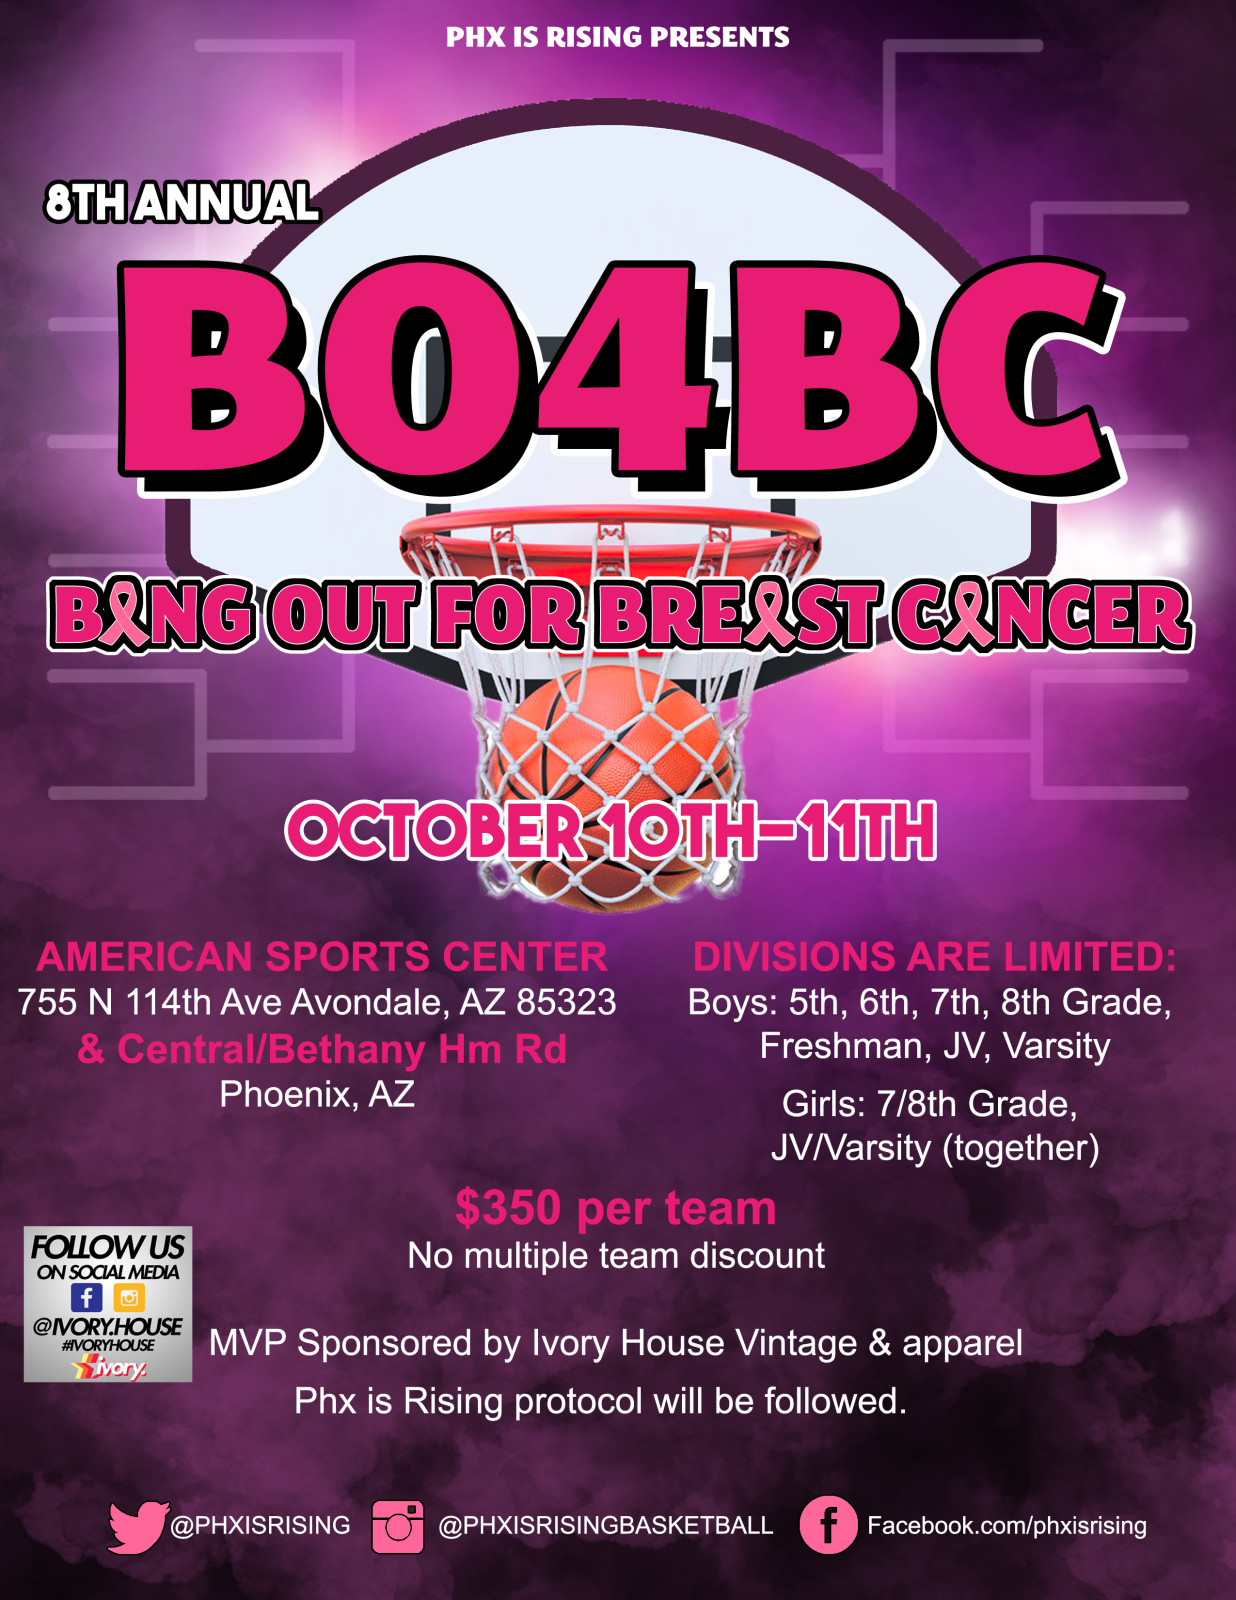 Bang_Out_For_Breast_Cancer_2020.jpg